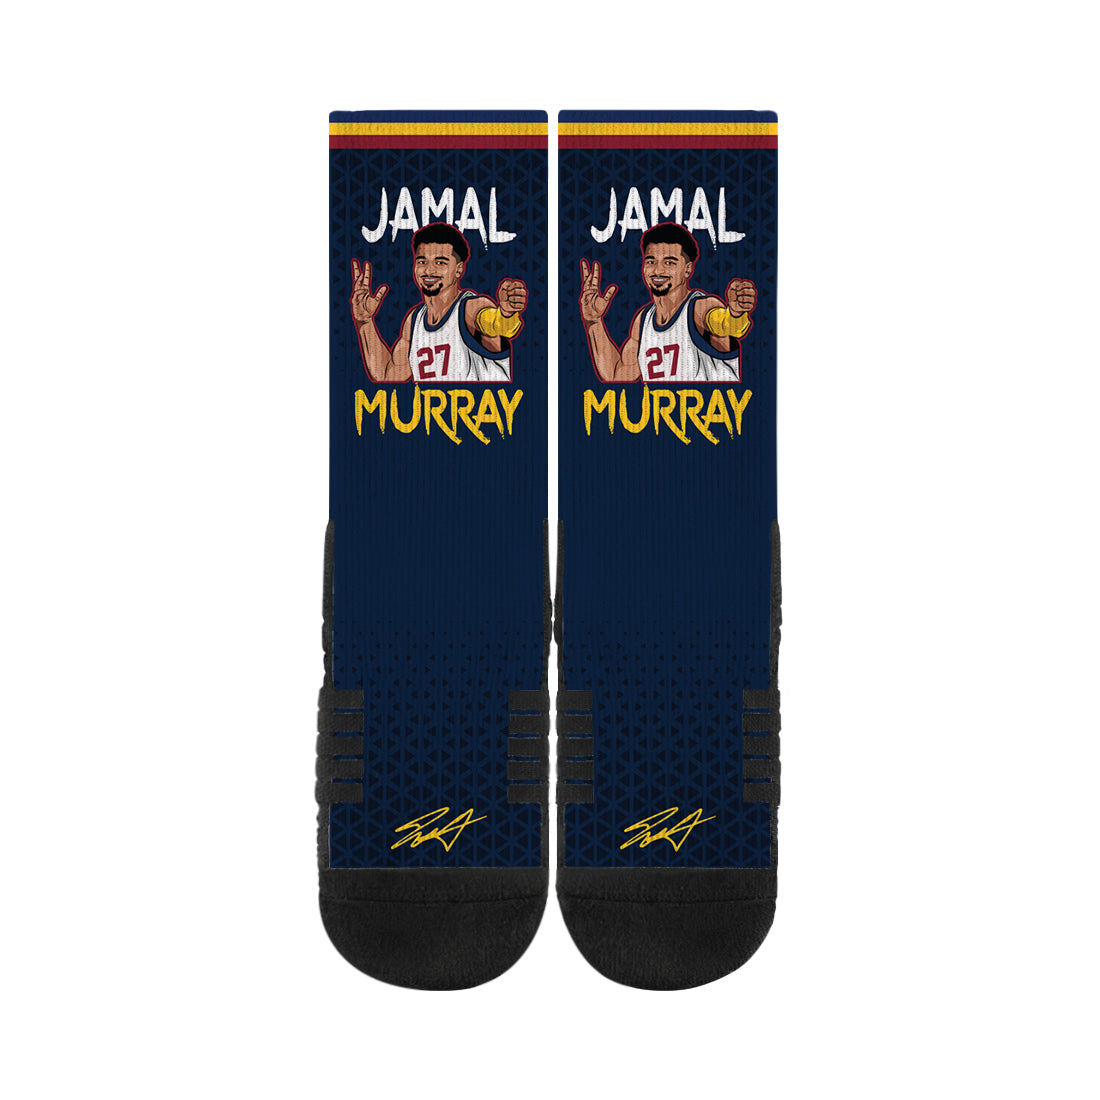 Jamal Murray Arrow Navy Socks